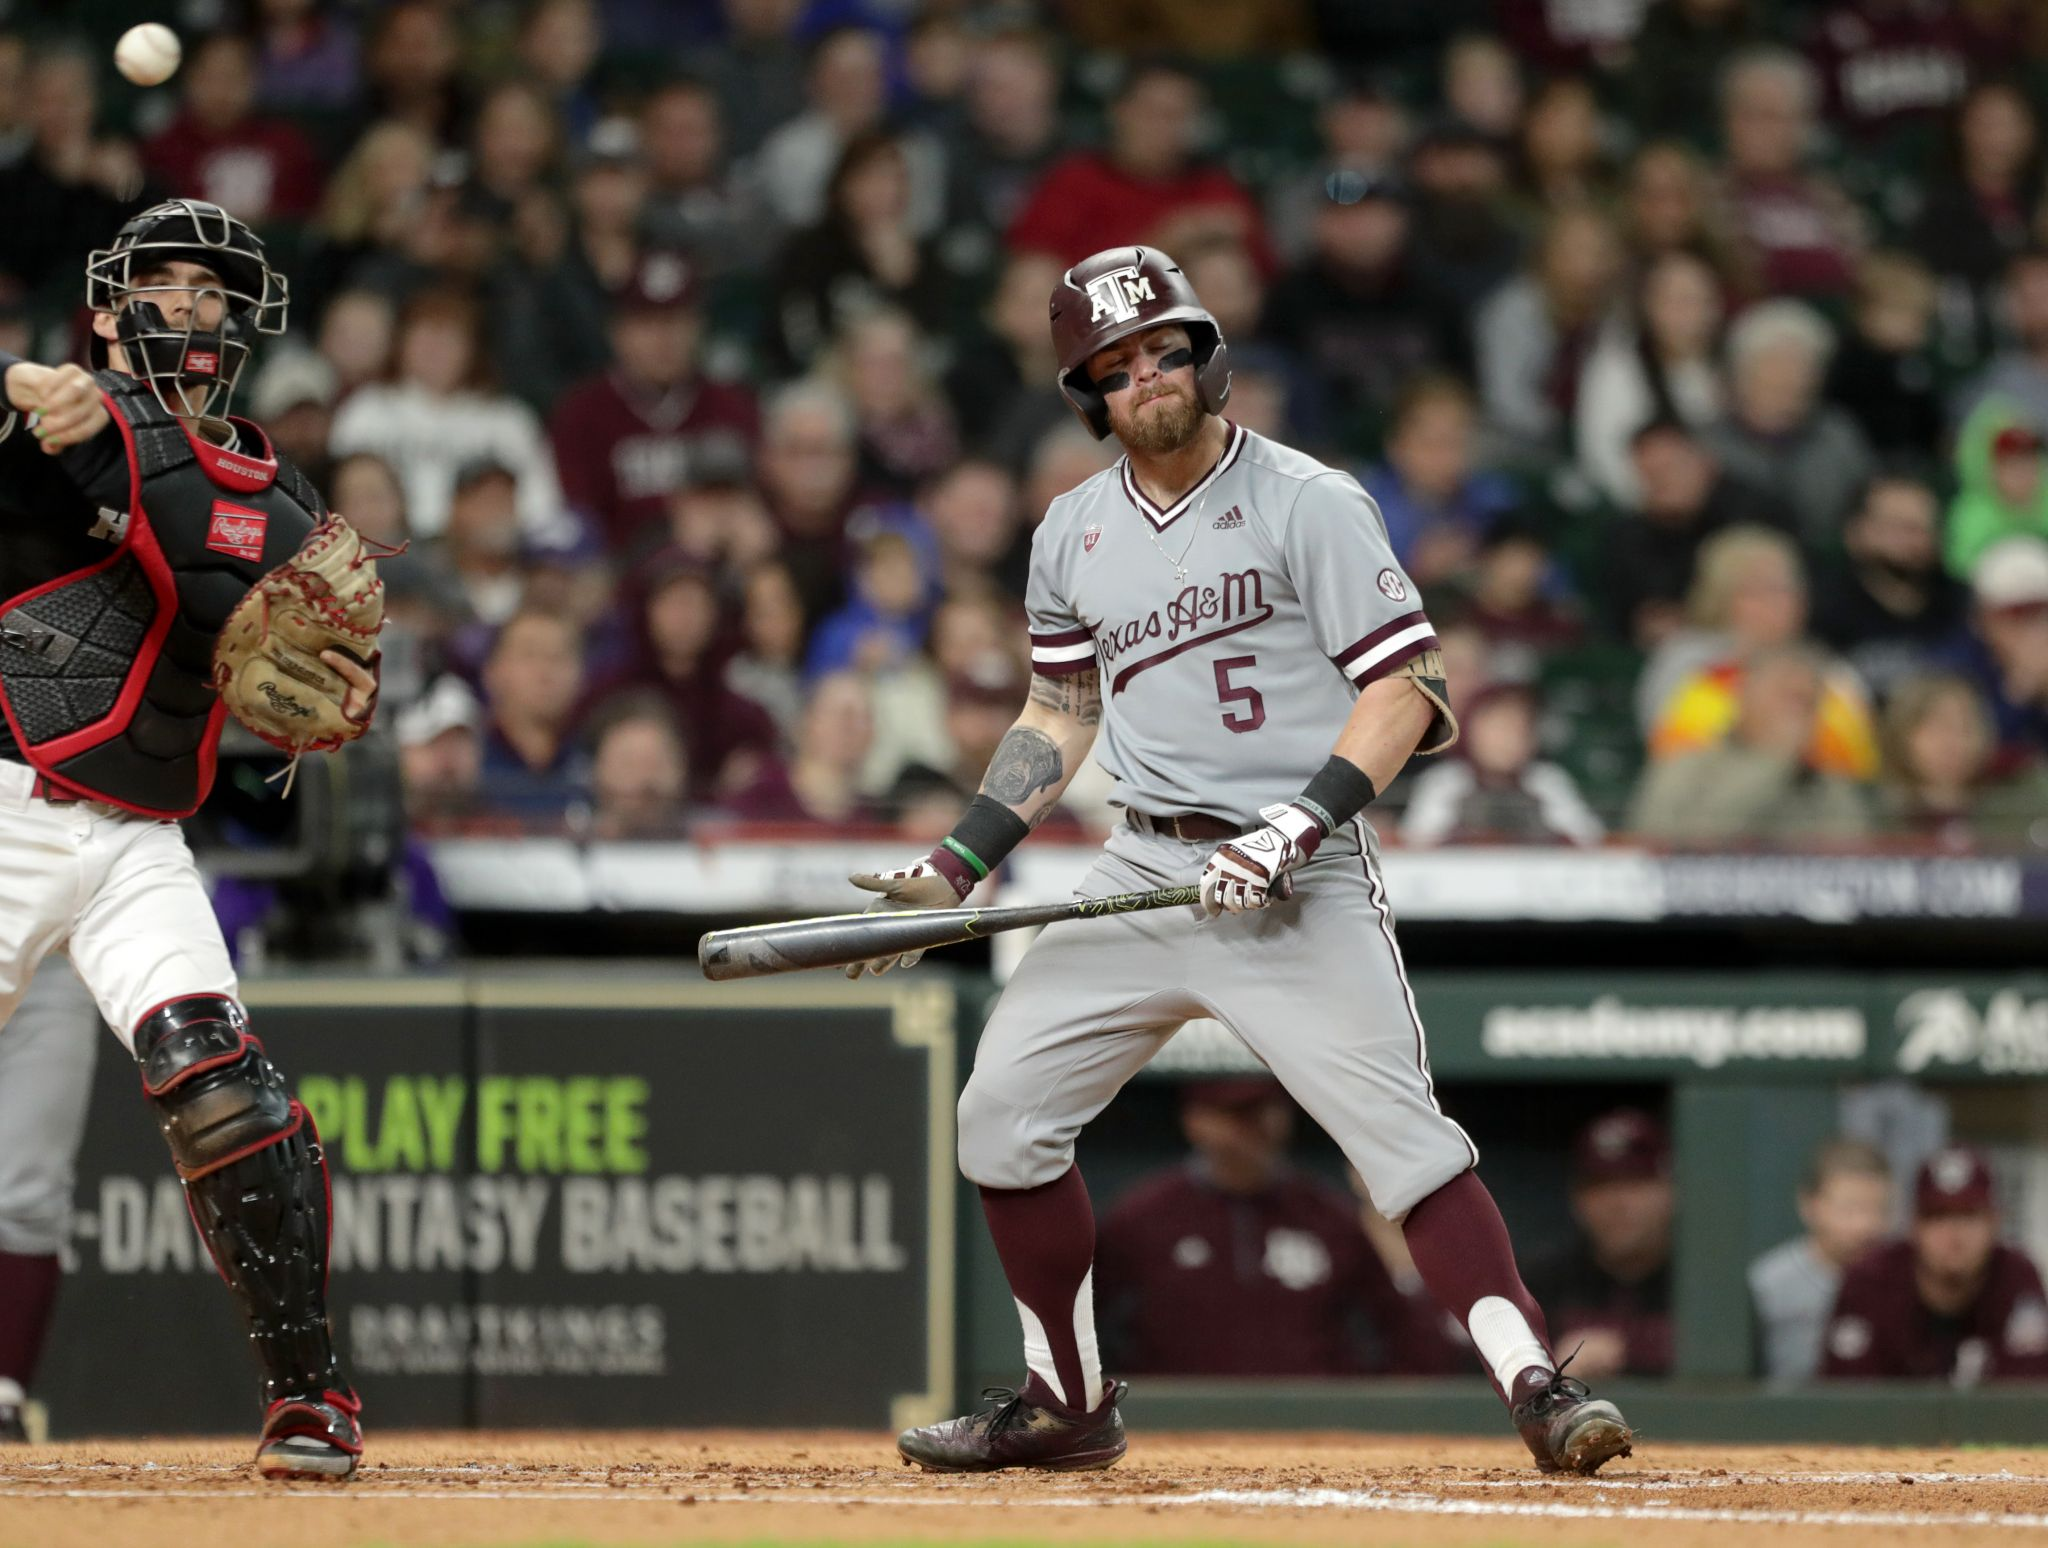 Logan Foster Helps Aggies Secure Victory Over Longhorns